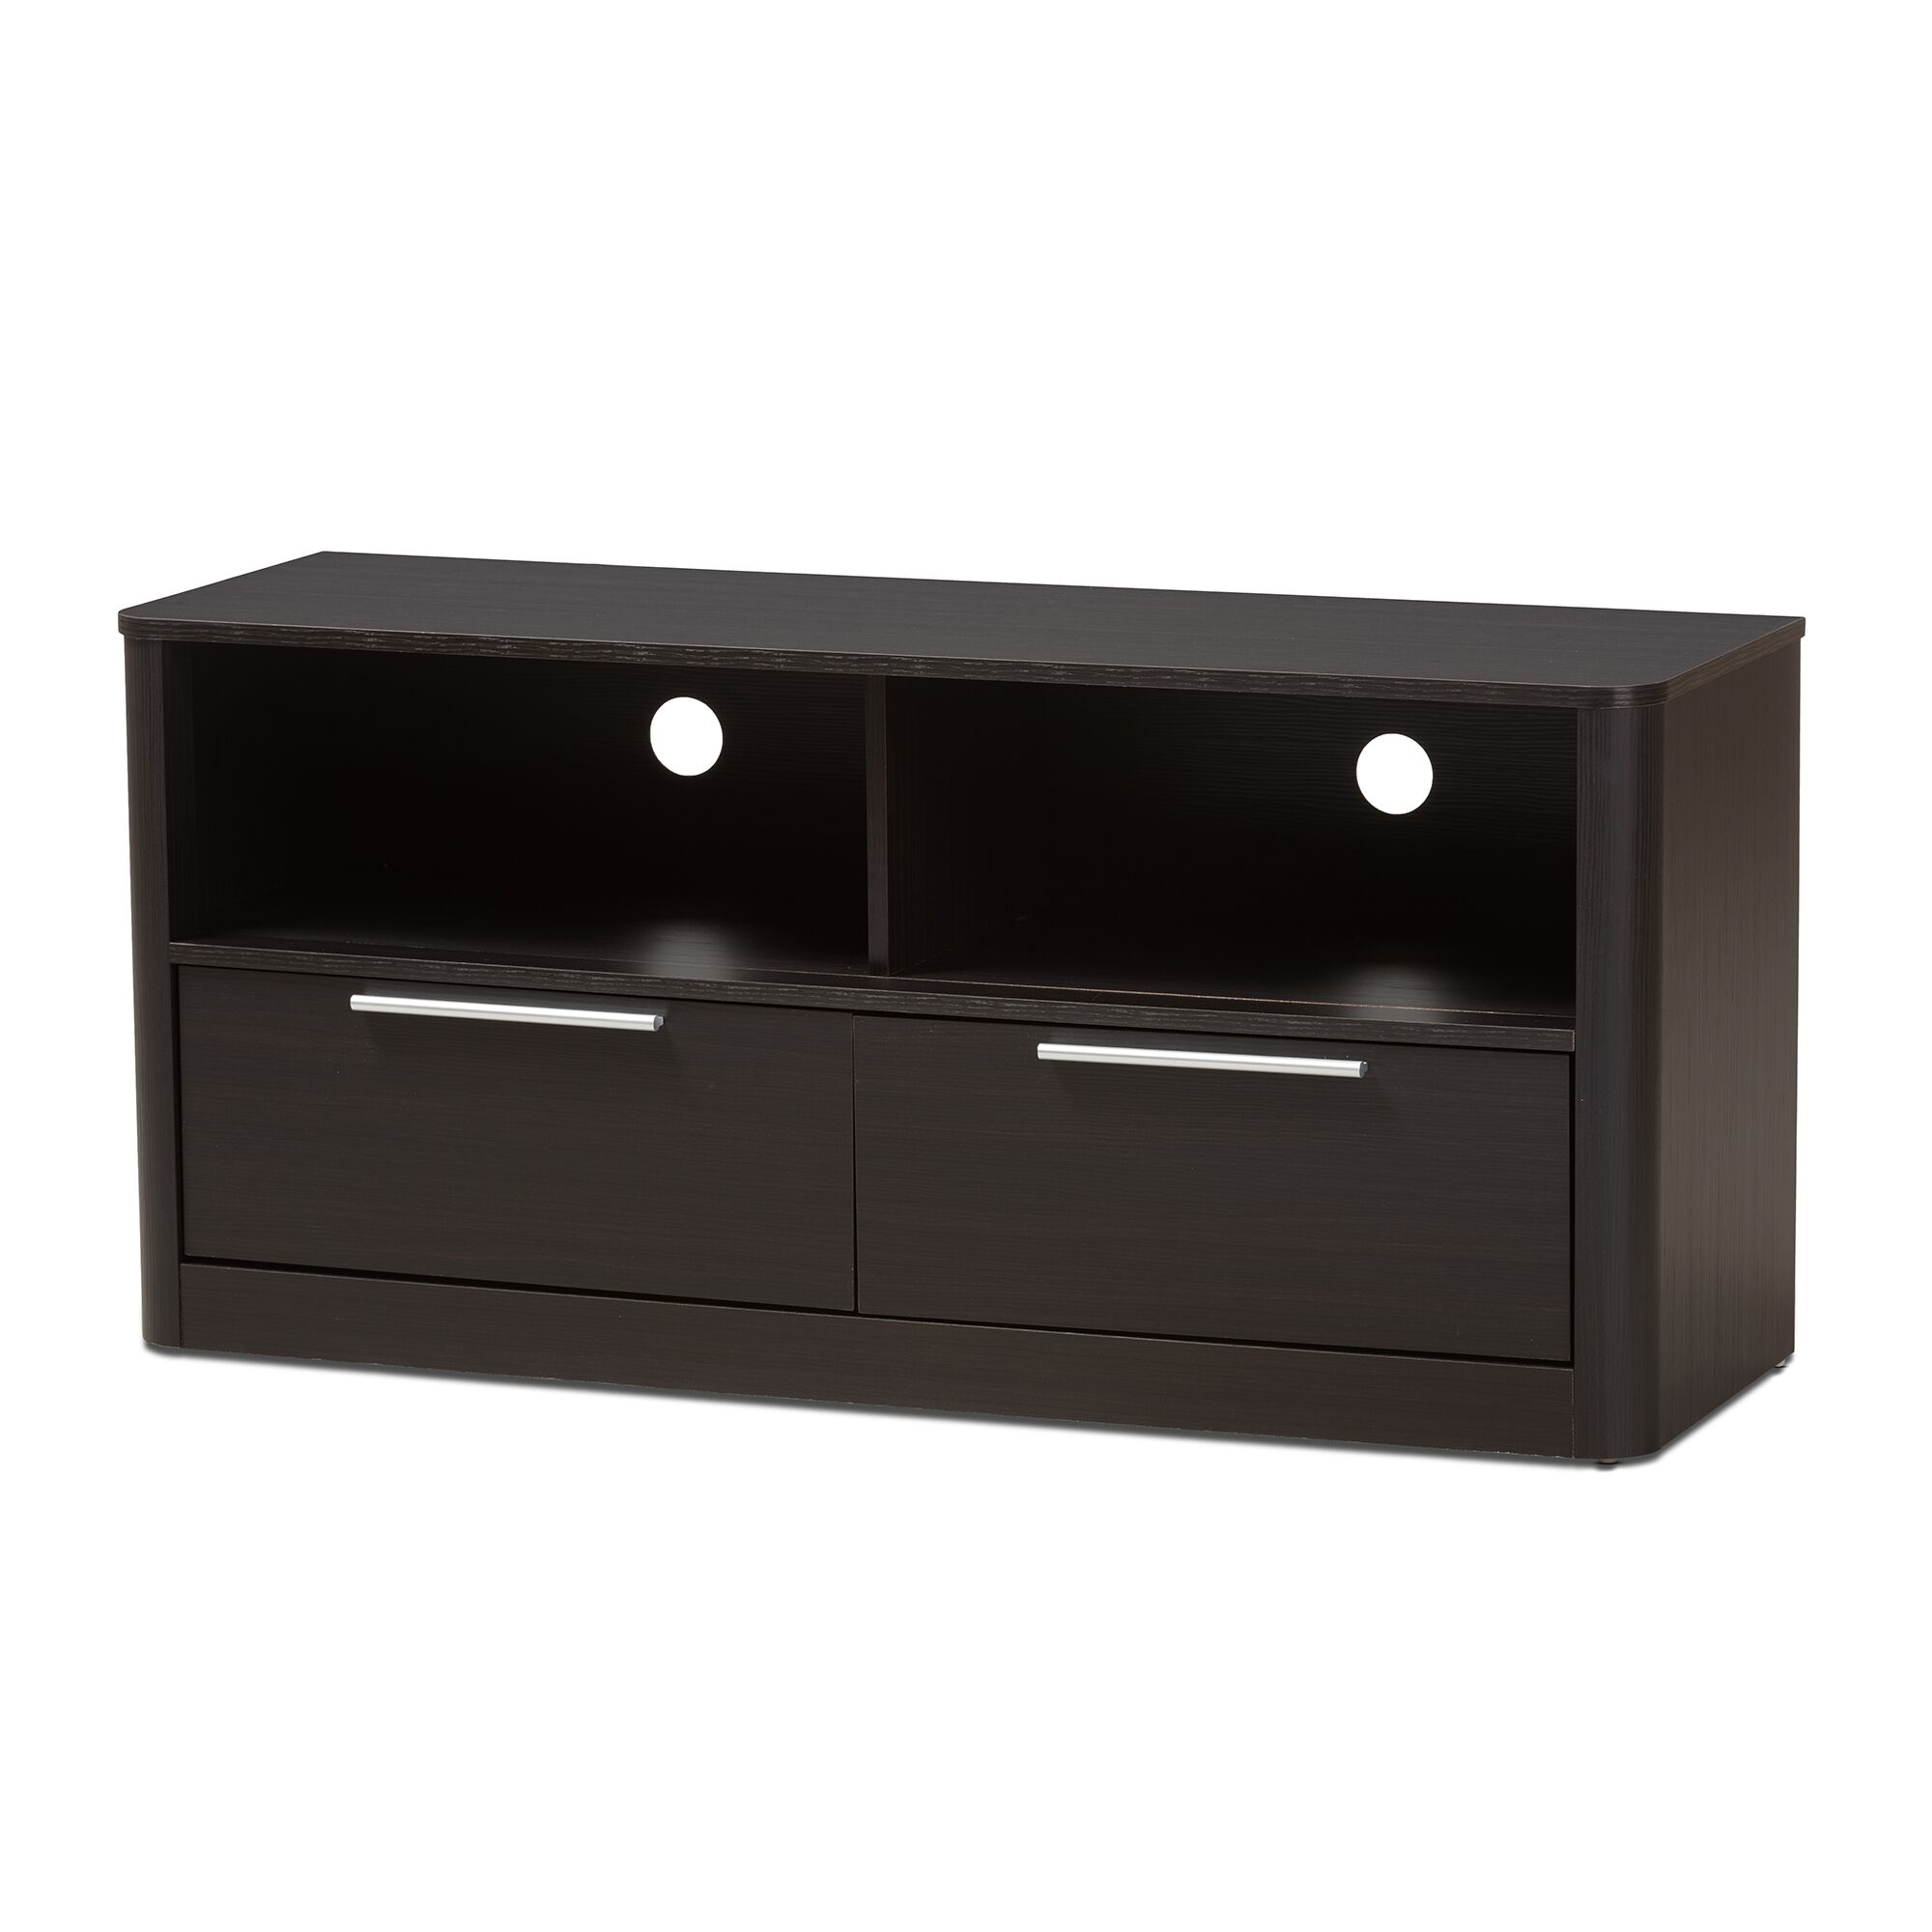 Polito Wood 2-Drawer 47